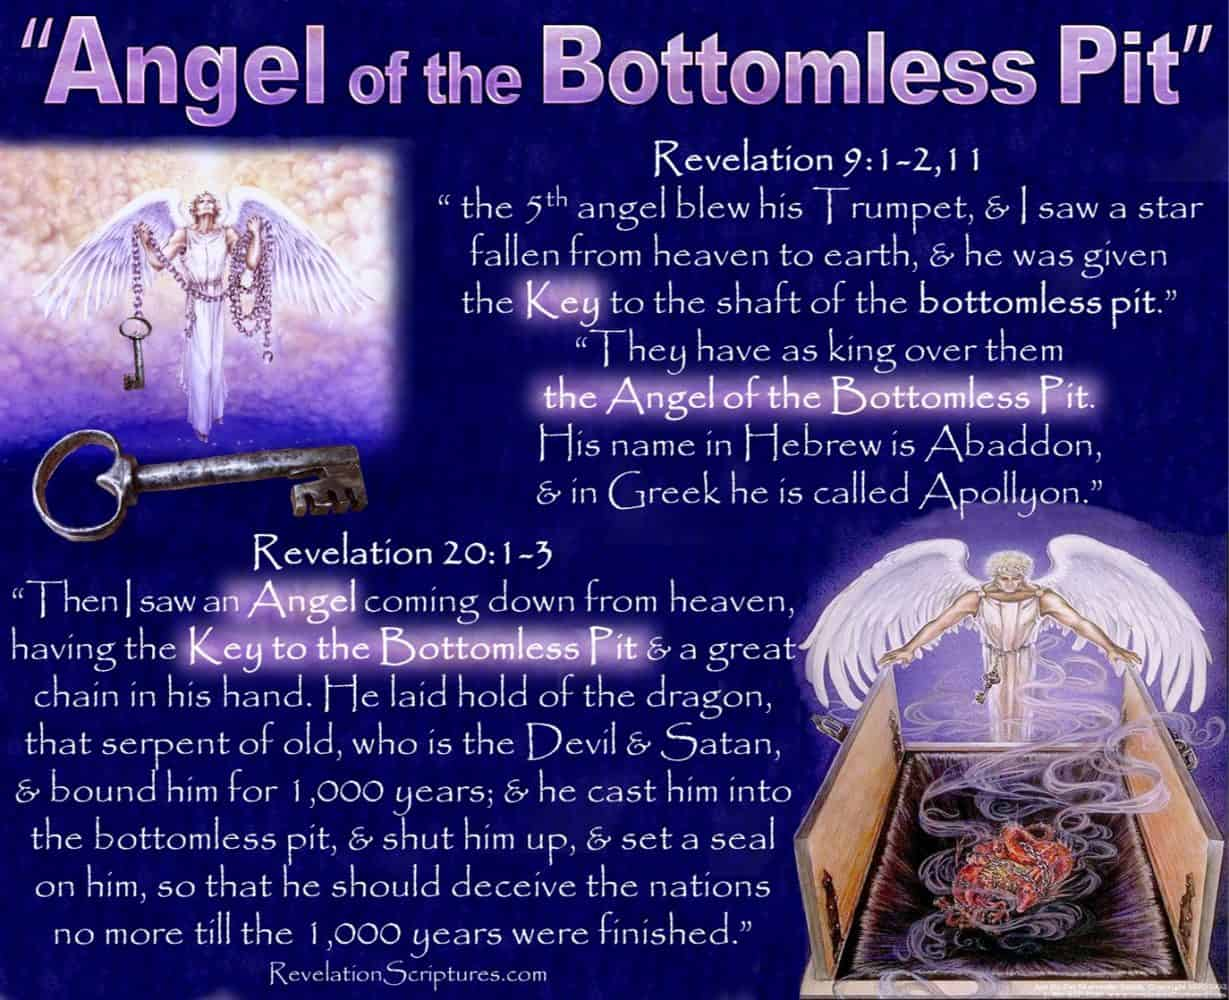 Abyss,Bottomless pit,pit,abyssos,key,open shaft,Revelation 9,Revelation 20,Revelation 17,5th Trumpet,fifth trumpet,Angle of the abyss,angle of the bottomless pit,bounds devil,devil in abyss,devil in bottomless pit,demons in abyss,demons in bottomless pit,Jesus in abyss,Jesus in bottomless pit,Luke 18,Romans 10,Book of Revelation,Apocalypse,What is the abyss,What is the bottomless pit,Scriptures about the abyss,scriptures about the bottomless pit,beast rises from abyss,beast rises from bottomless pit,abaddon,locusts,dragon,beast,creature,devil,bible,book,gog,judgment,bound,fire,angle,Apollyon,destroyer